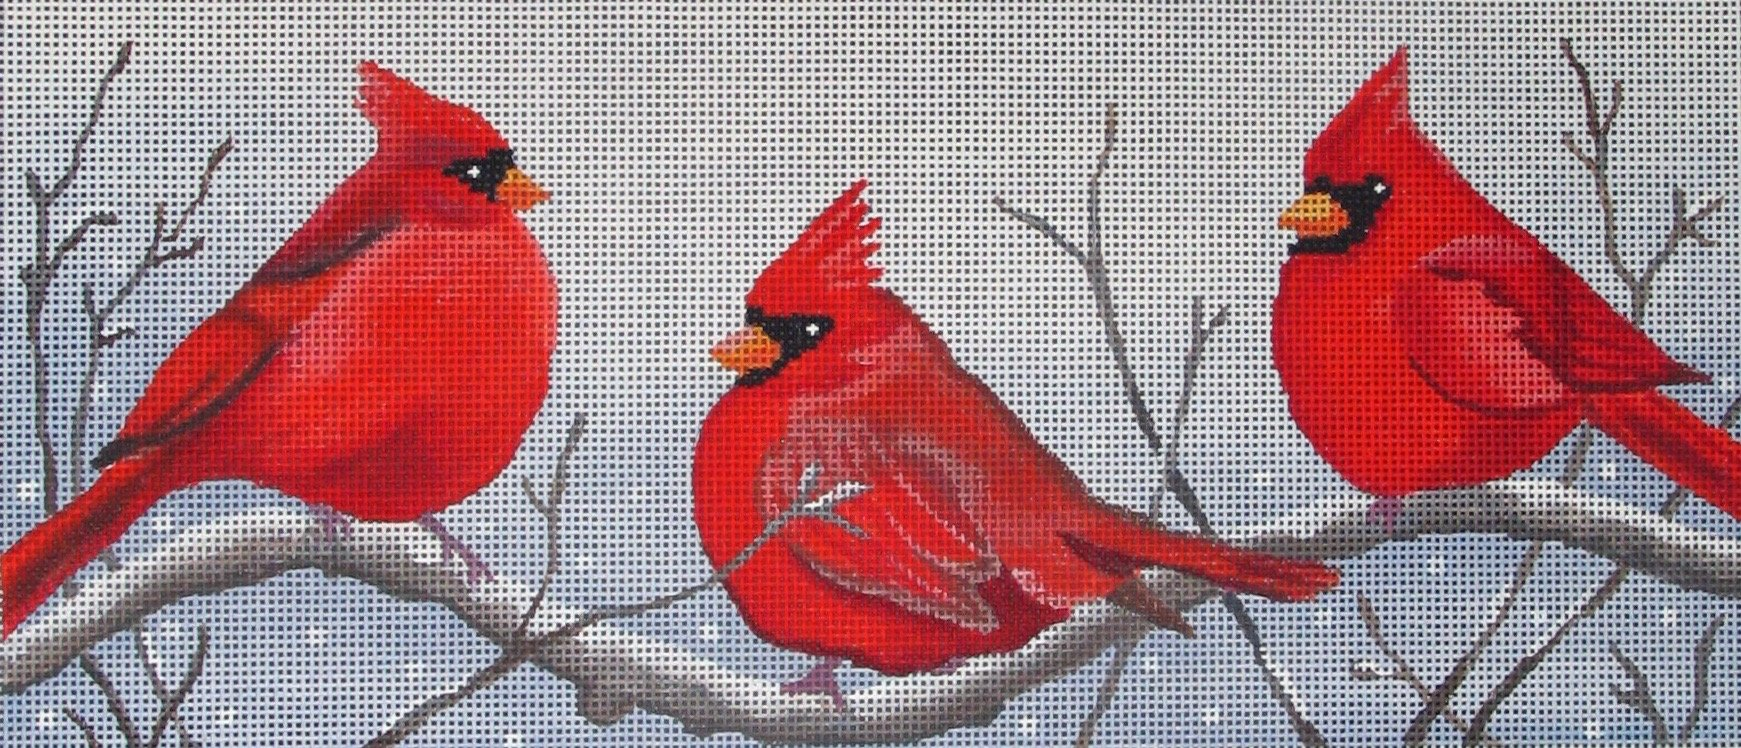 3 CARDINALS IN THE SNOW